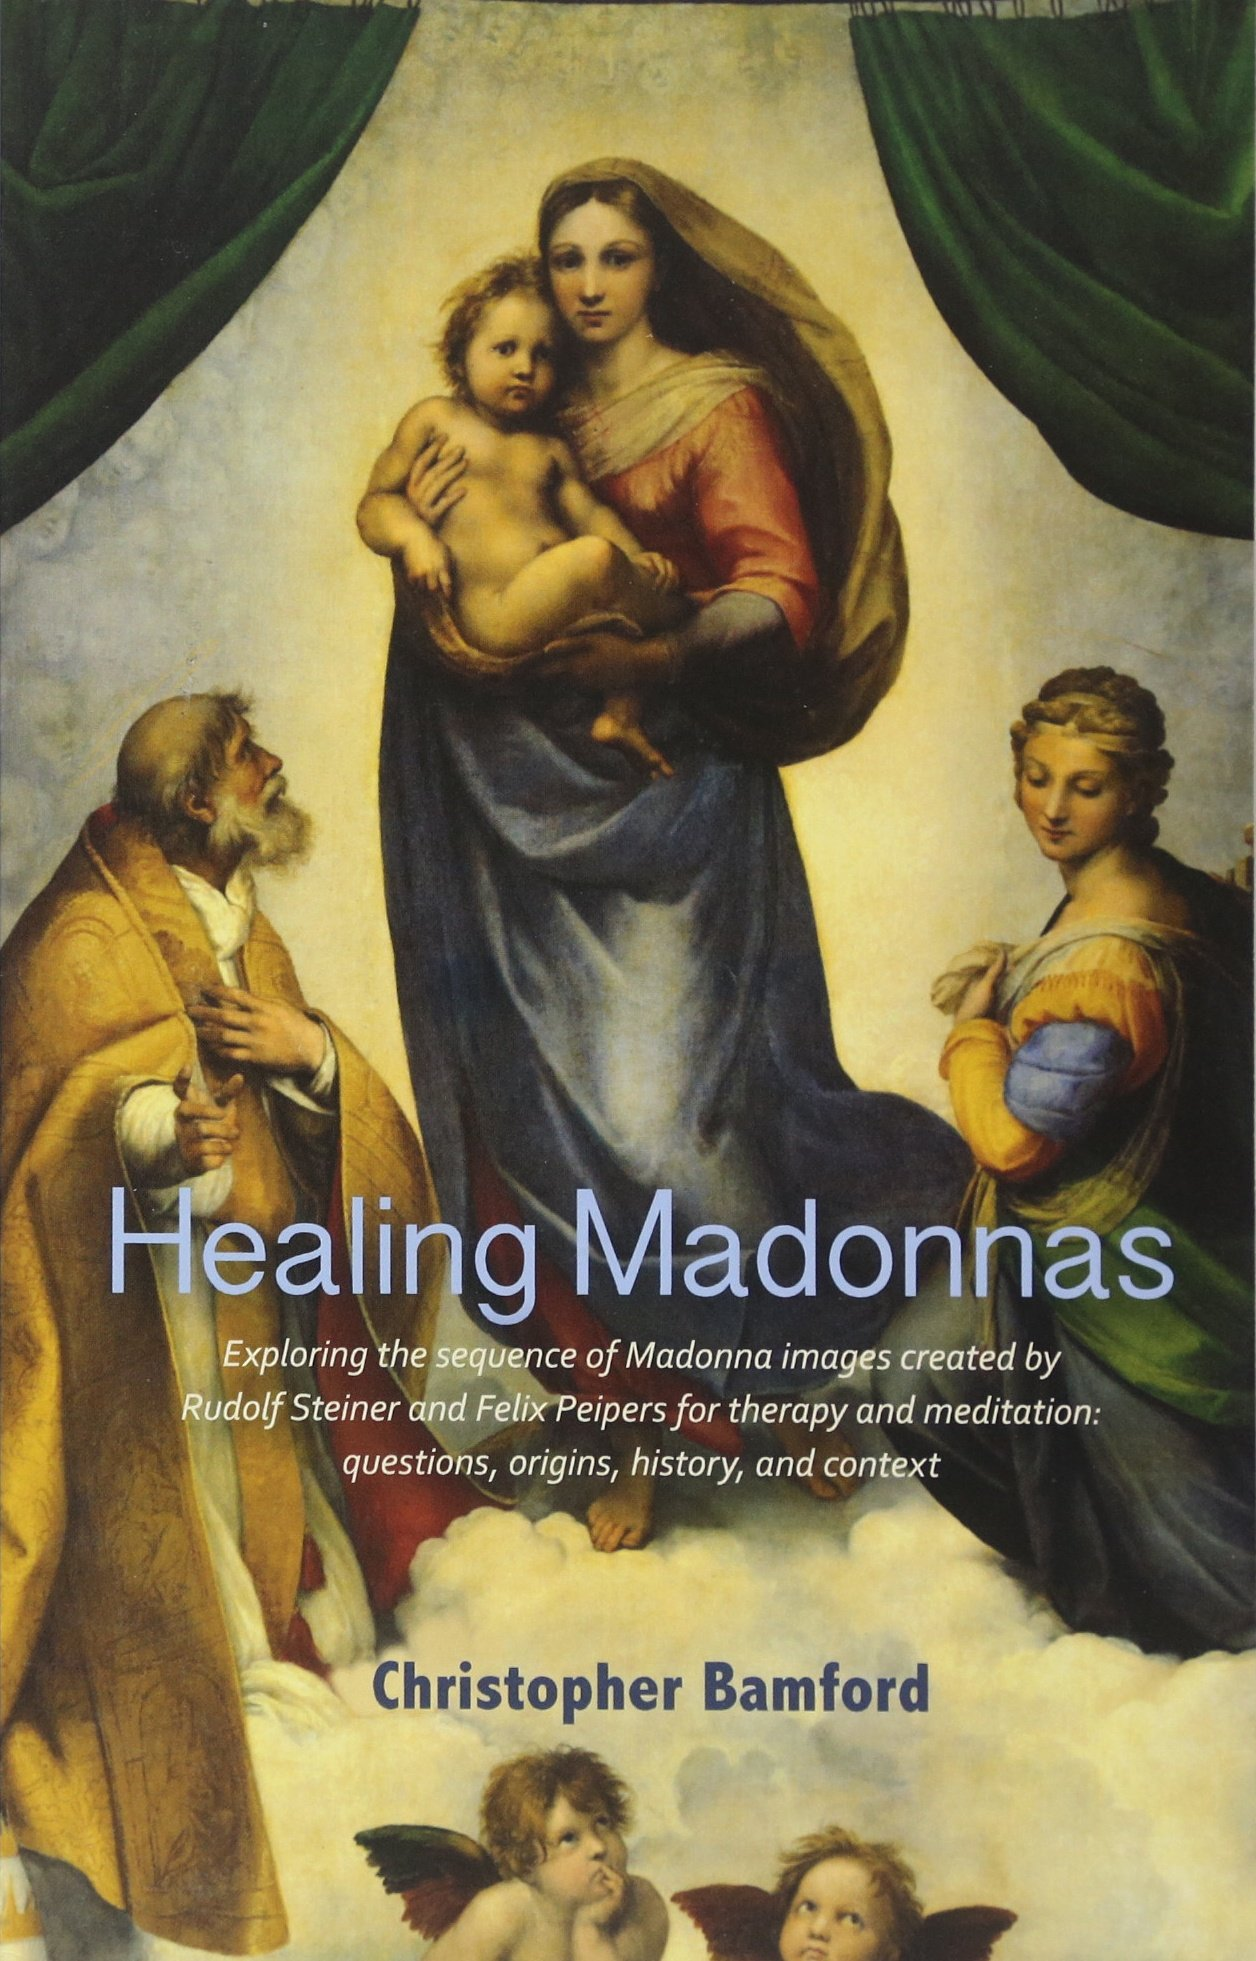 Healing Madonnas: Exploring the Sequence of Madonna Images Created by Rudolf Steiner and Felix Peipers for Use in Therapy and Meditation